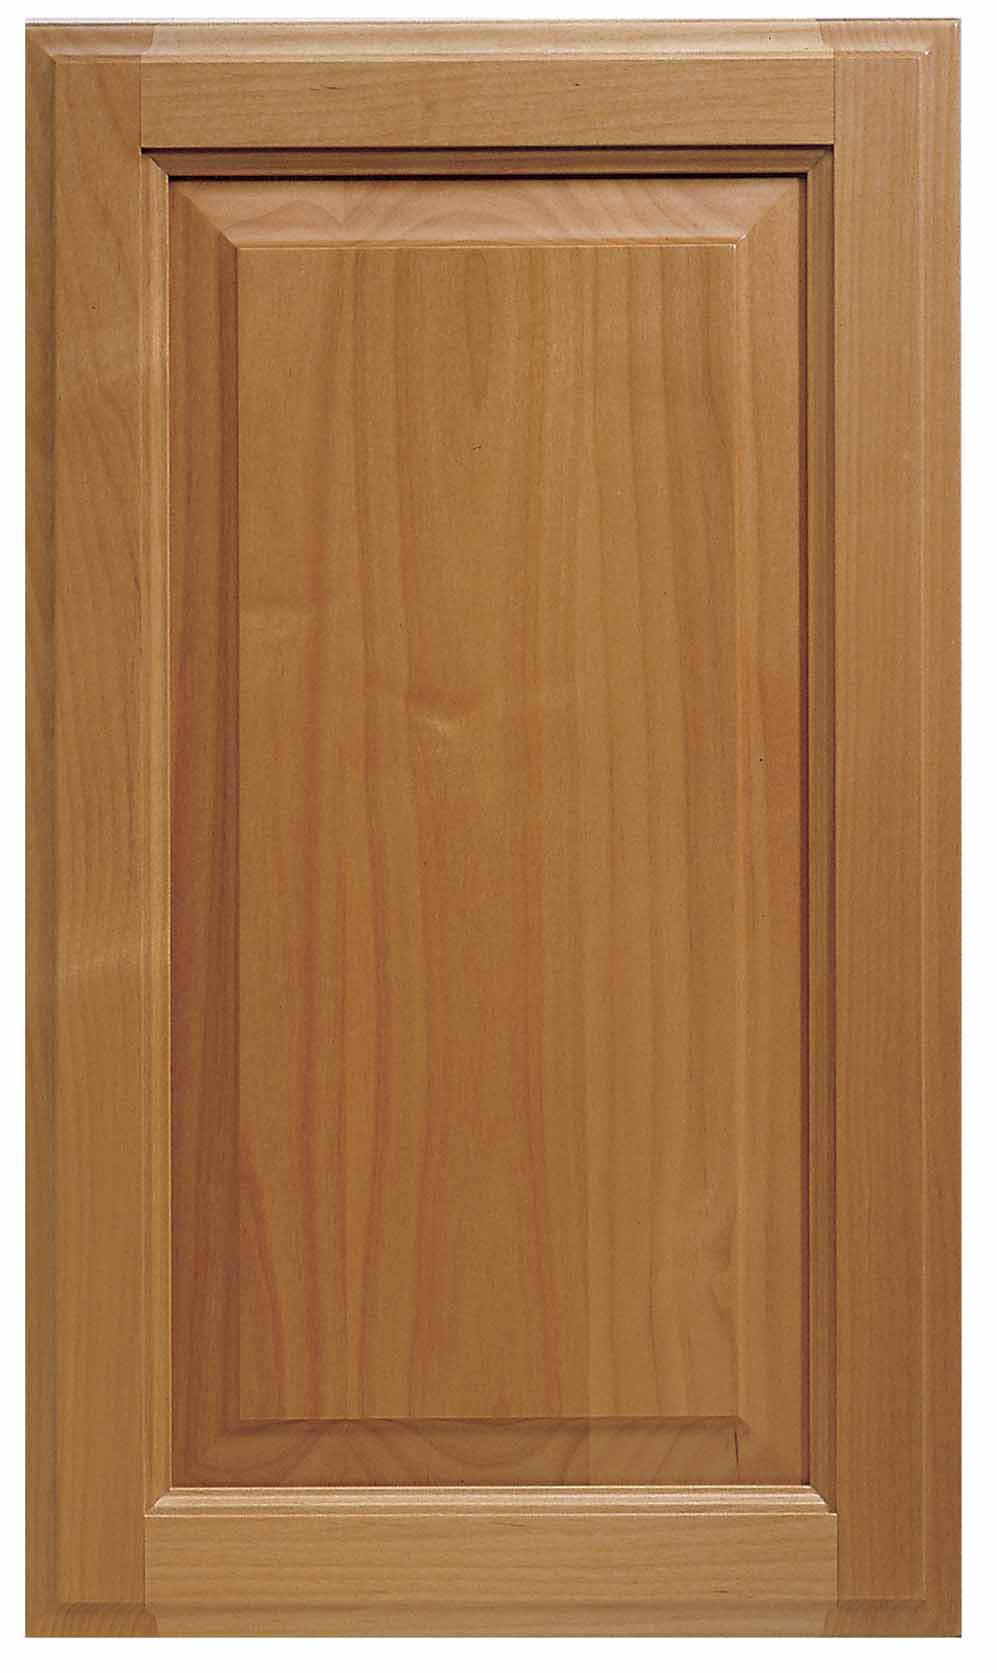 Replacement Doors for Kitchen Cabinets Inspirational Replacement Kitchen Doors — Melissa Francishuster Home